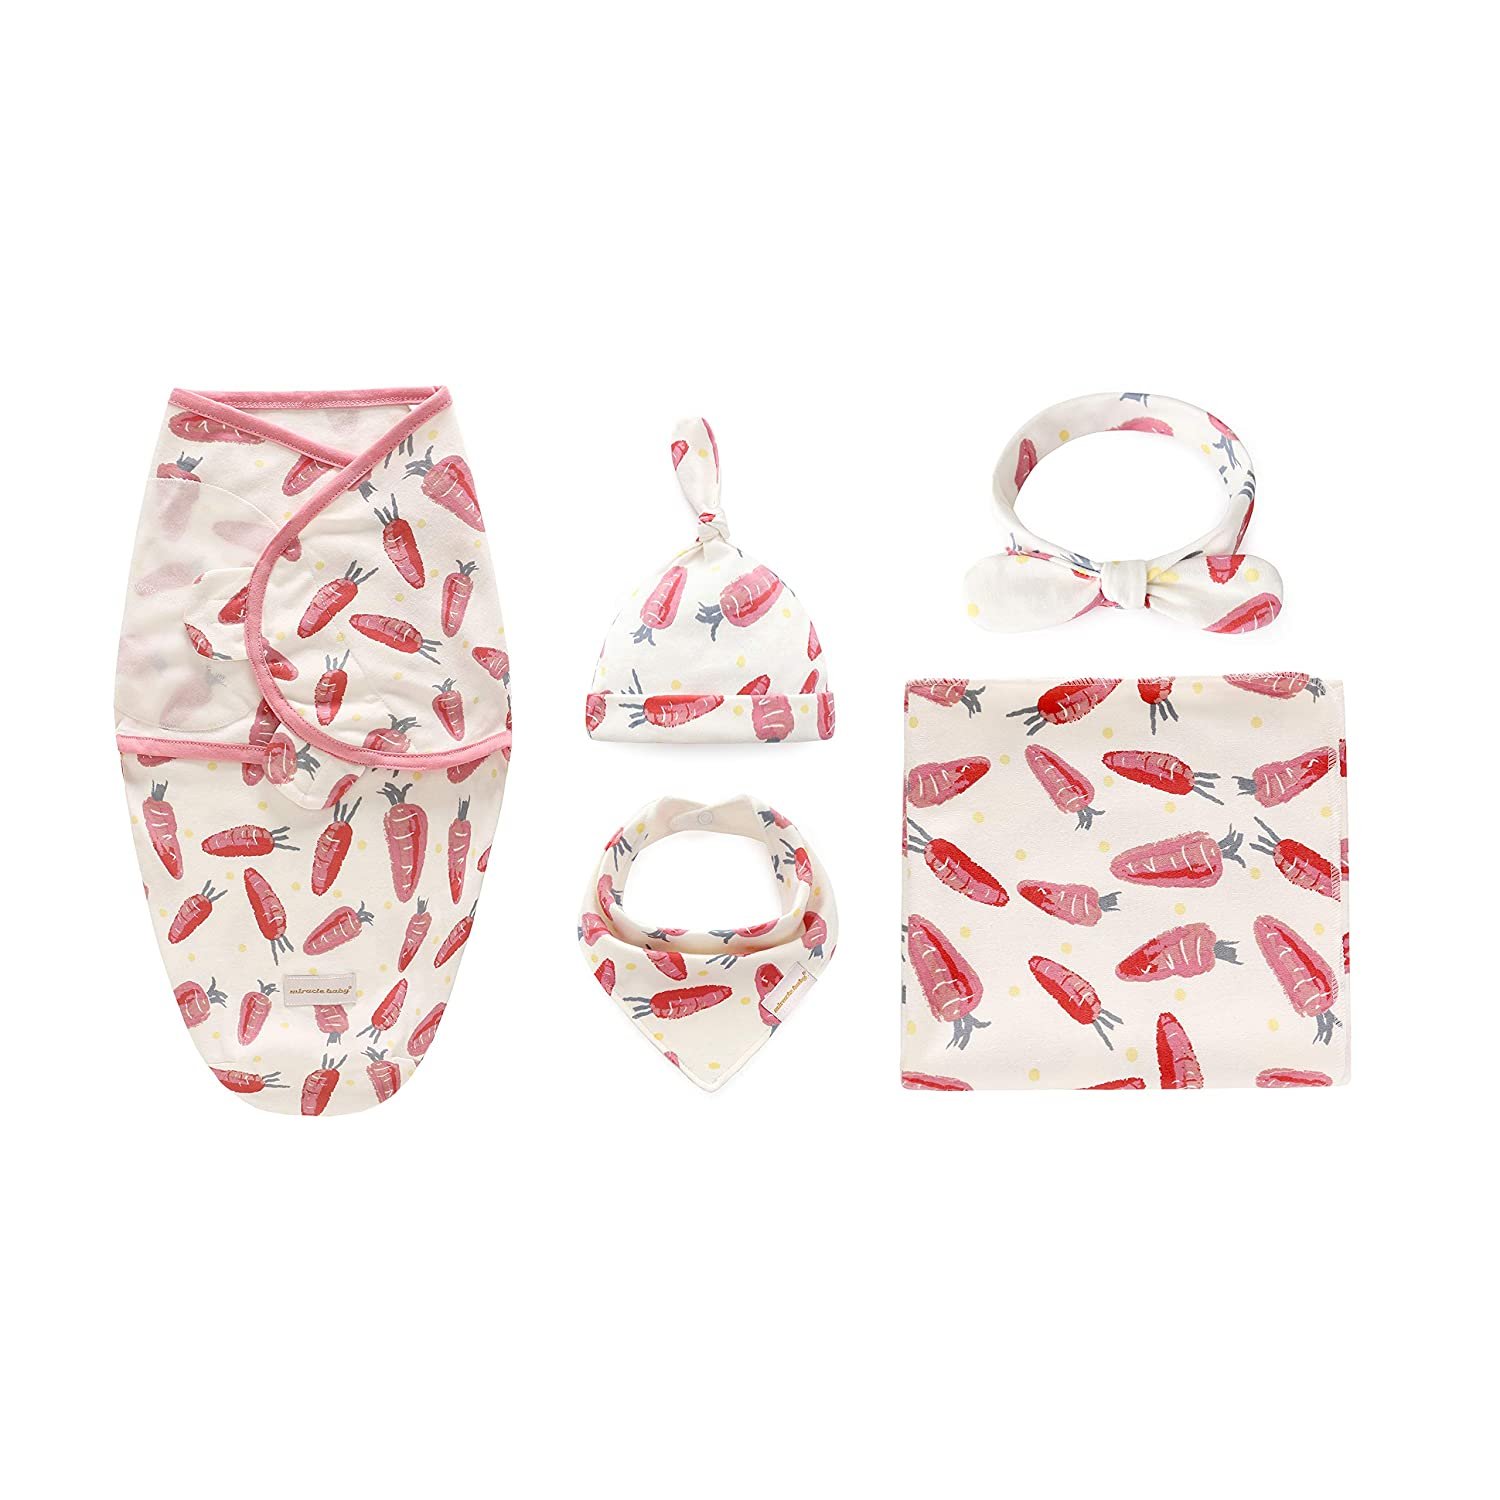 100/% Cotton Knitted Times Golden International Group Limited CP2090449-5PCS Headband Bandana Bib Set Baby Swaddle Wrap Blankets with Hat for 0-3 Months, Grey Deer 5-Pack Shower Gift for Newborn Infants Swaddling /& Receiving /& Sleeping /& Drooling